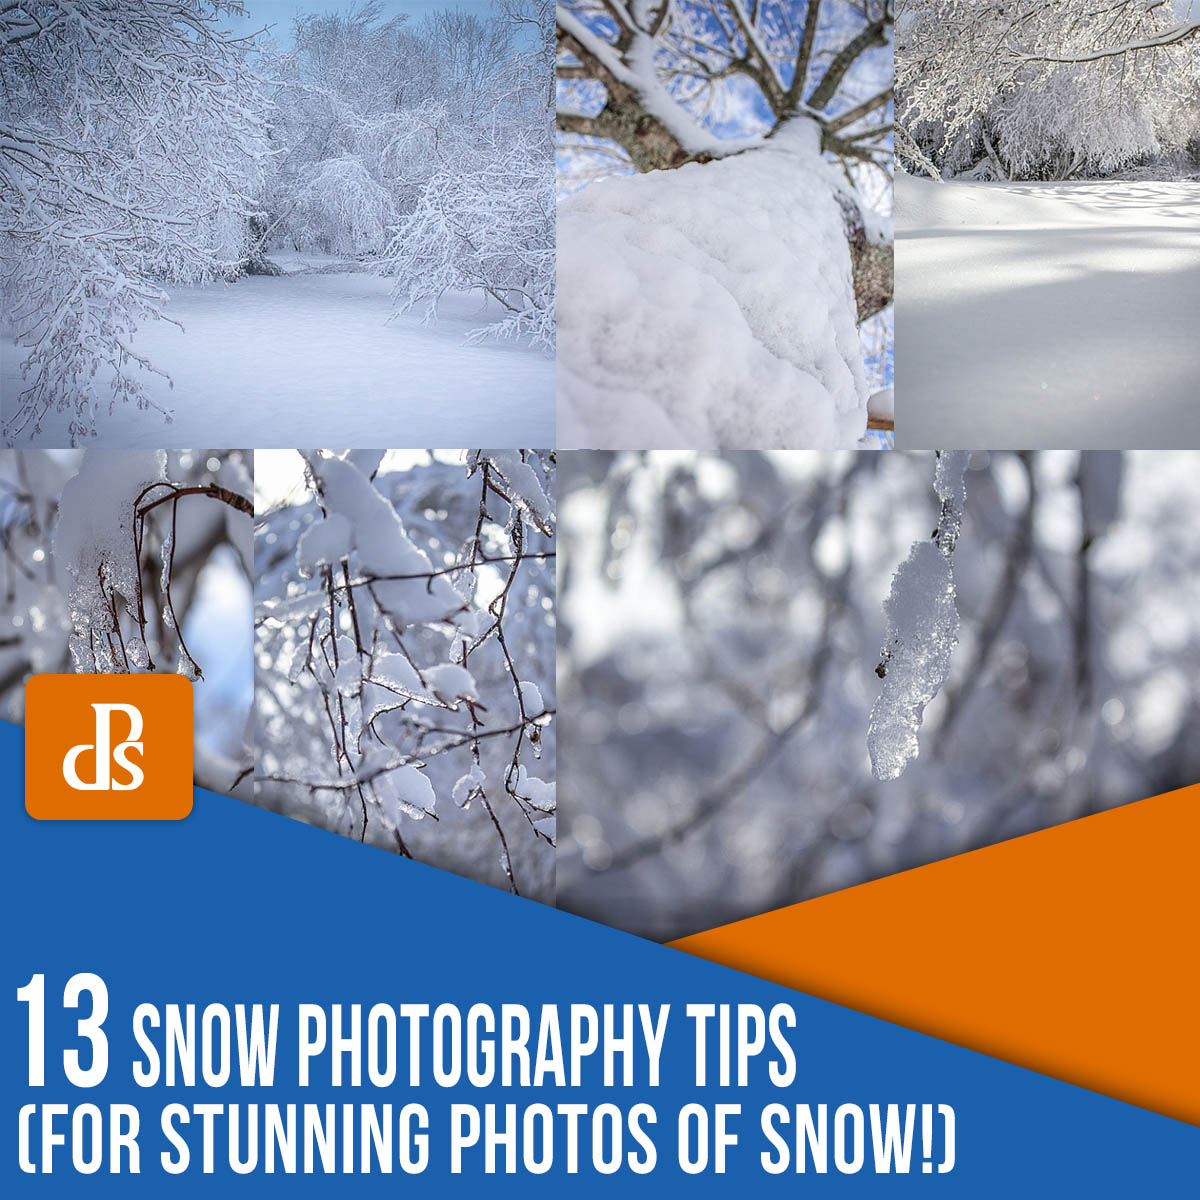 snow photography tips for beginners